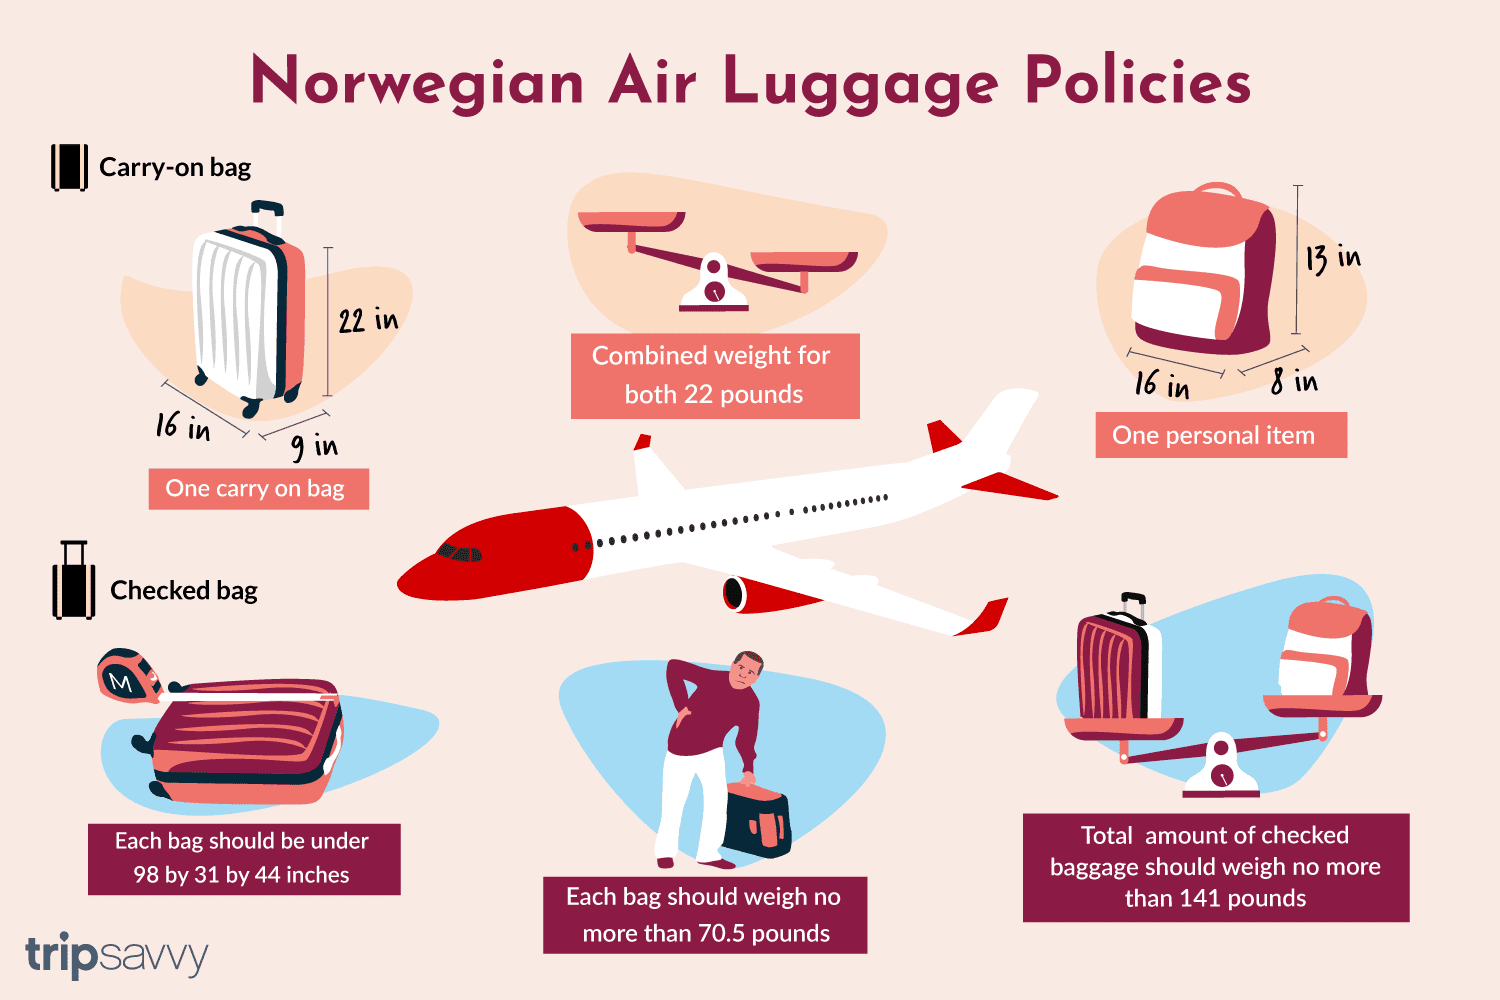 Luggage Rules And Restrictions At Norwegian Air